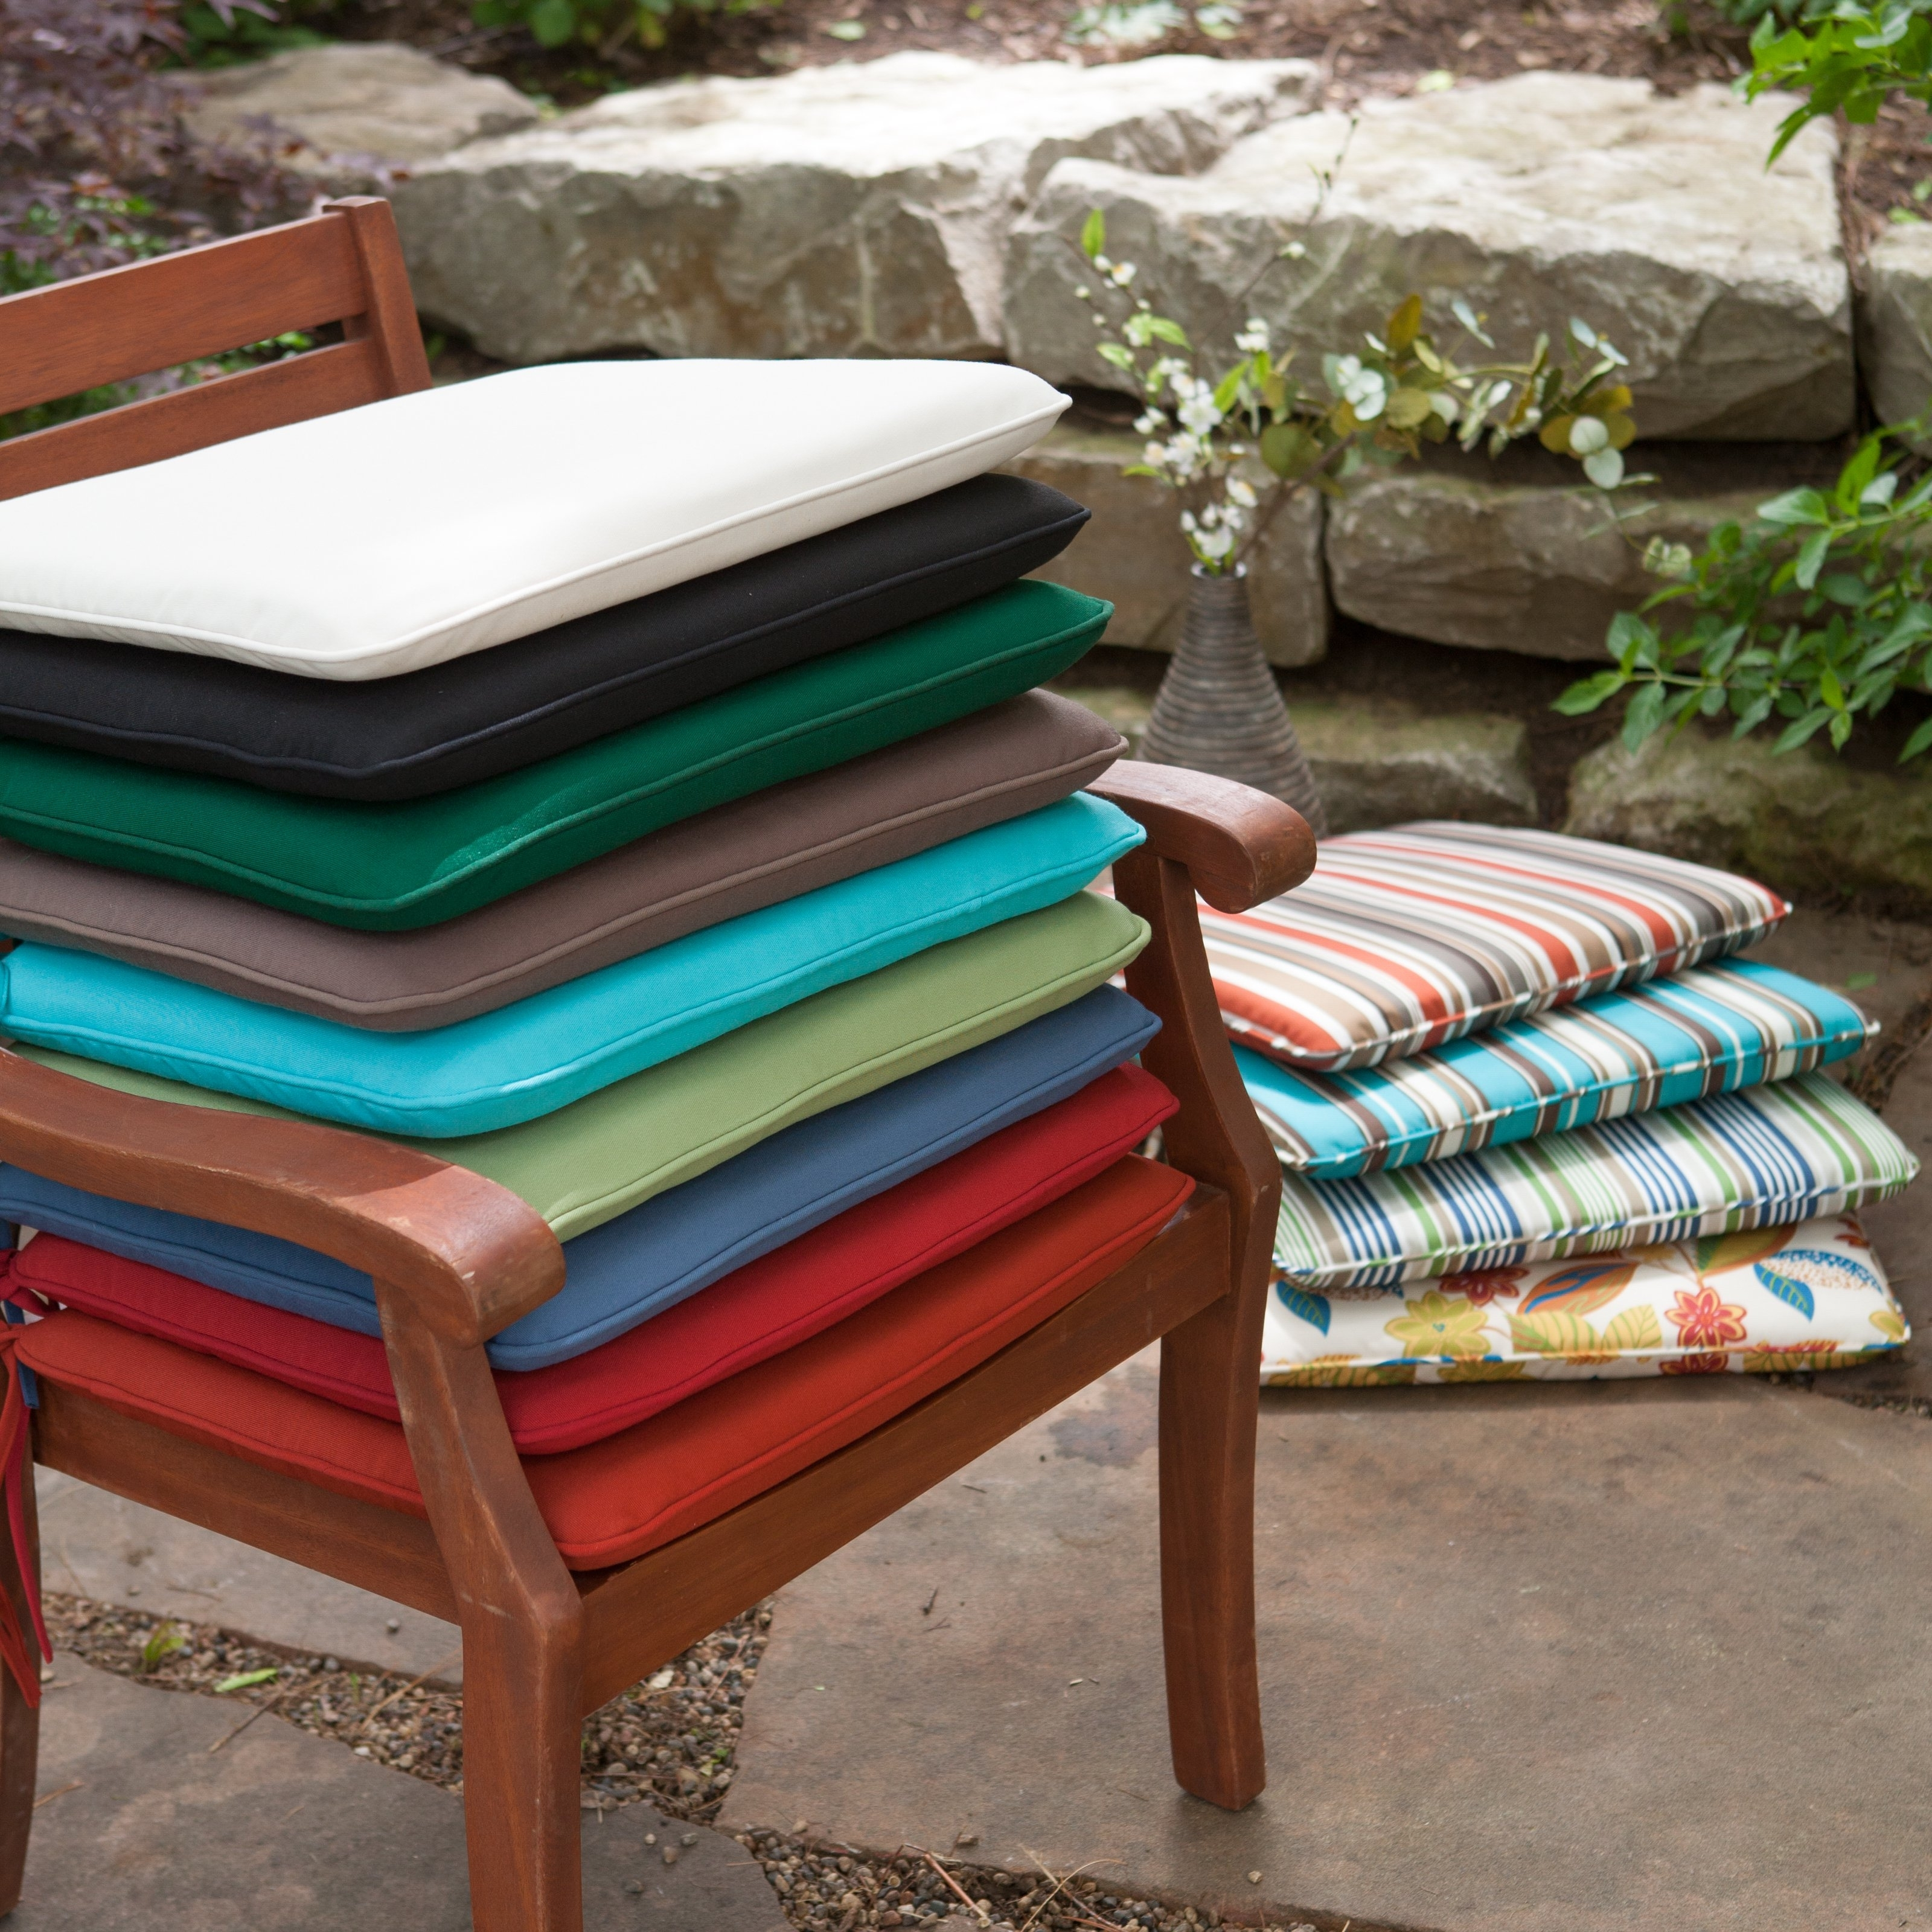 2018 Outdoor Rocking Chair Seat Cushions Modern Bench Cushion Ideas For Rocking Chair Cushions For Outdoor (View 13 of 15)